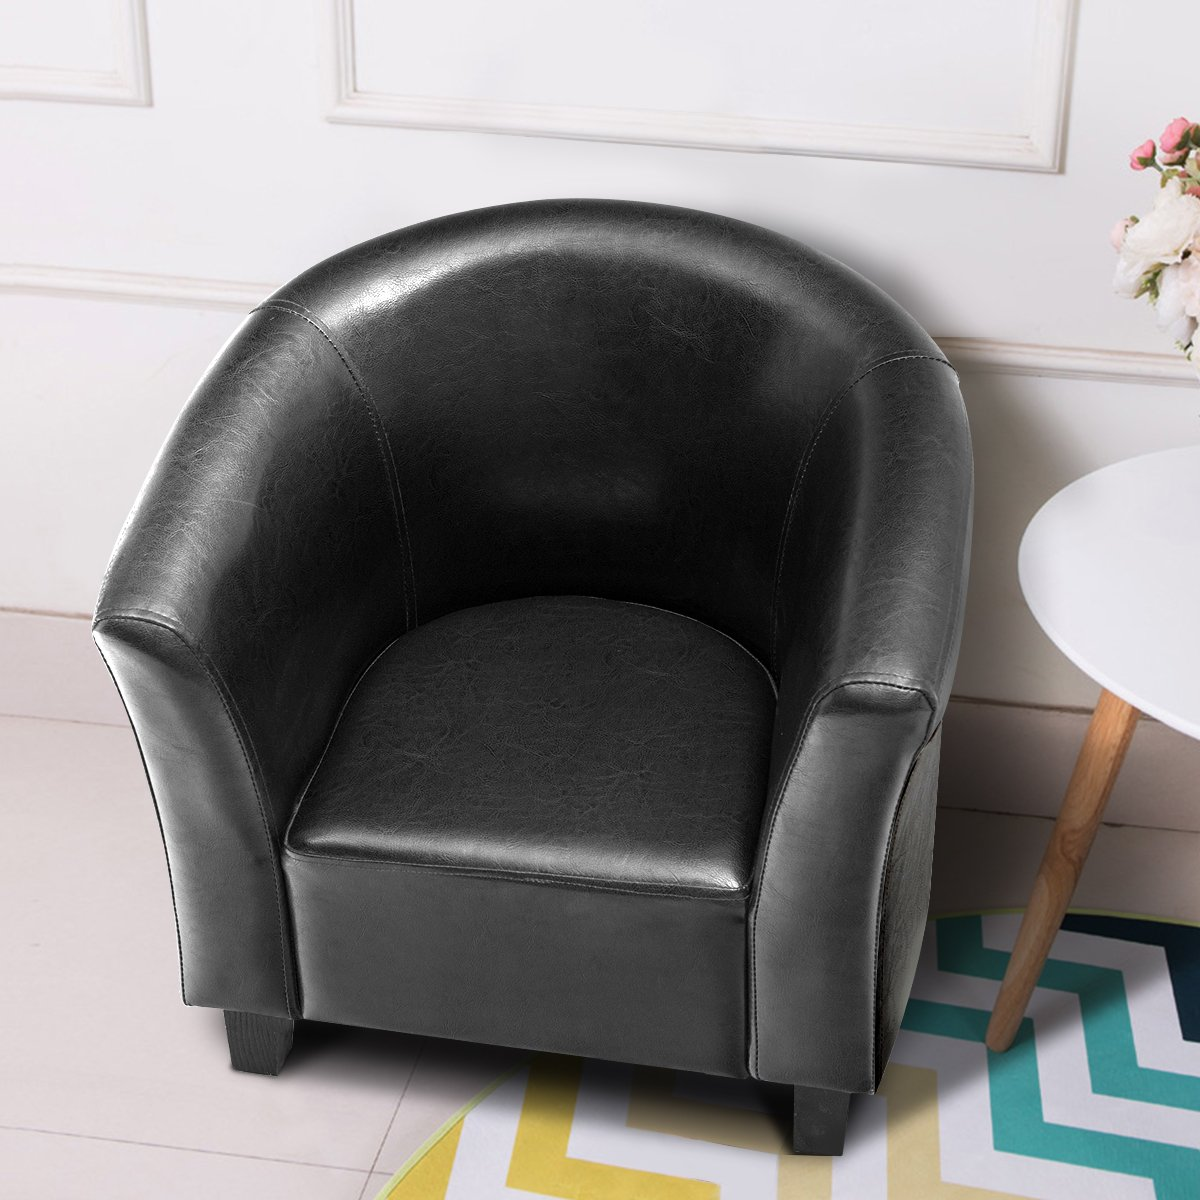 Costzon Kids Sofa Tub Chair Couch Children Living Room Toddler Furniture (PU Leather, Black) by Costzon (Image #5)